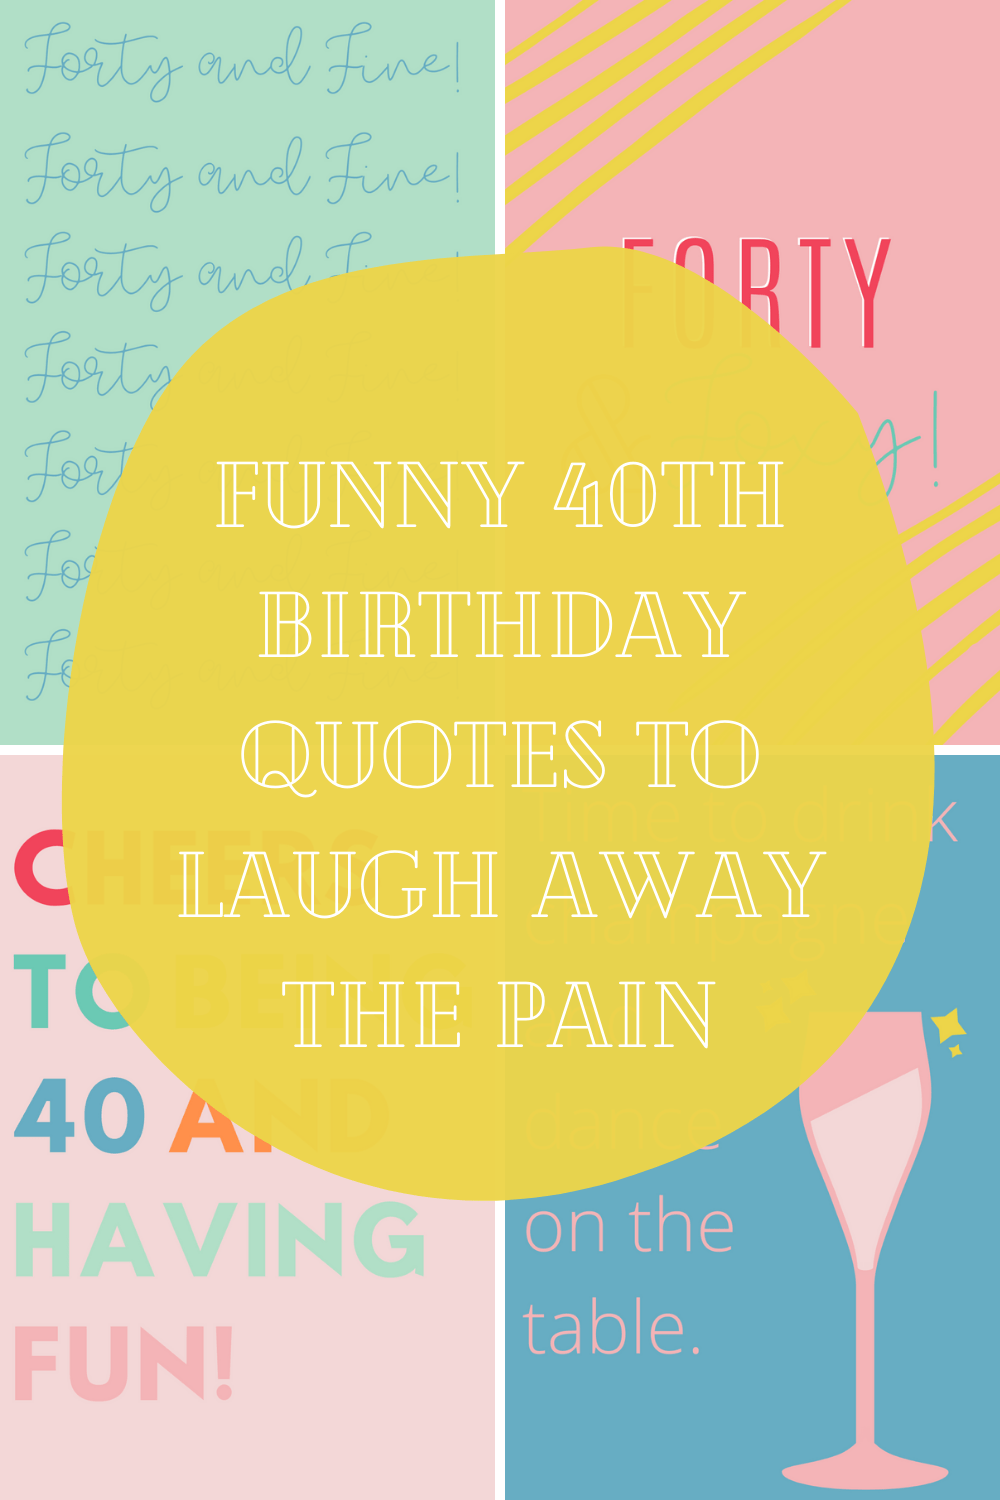 Funny 40th Birthday Quotes To Laugh Away The Pain Darling Quote